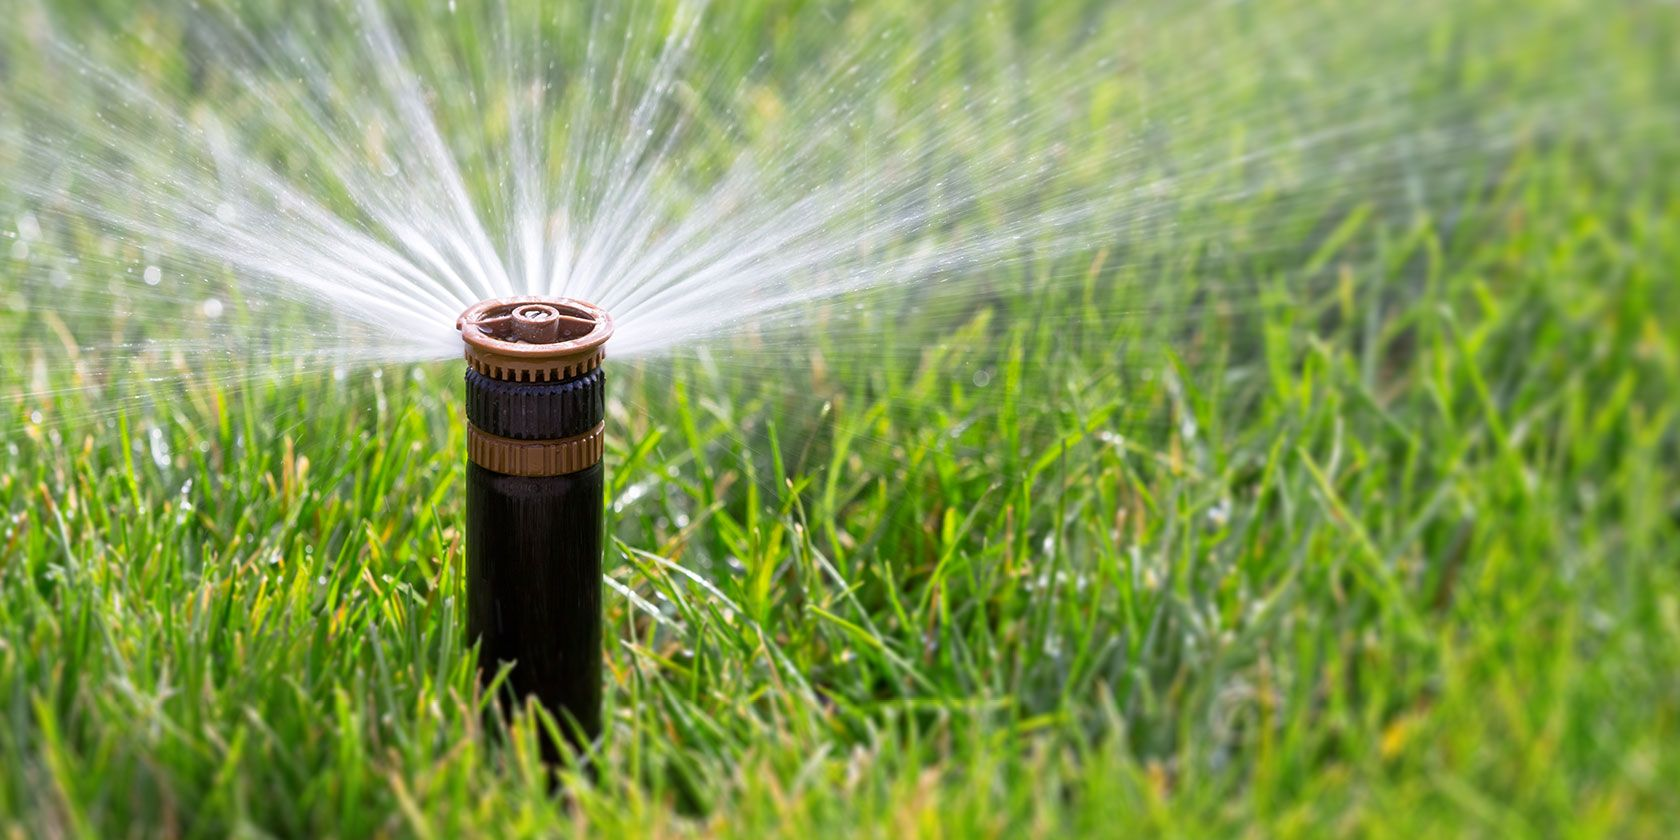 The 5 Best Smart Sprinkler Systems to Conserve Water and